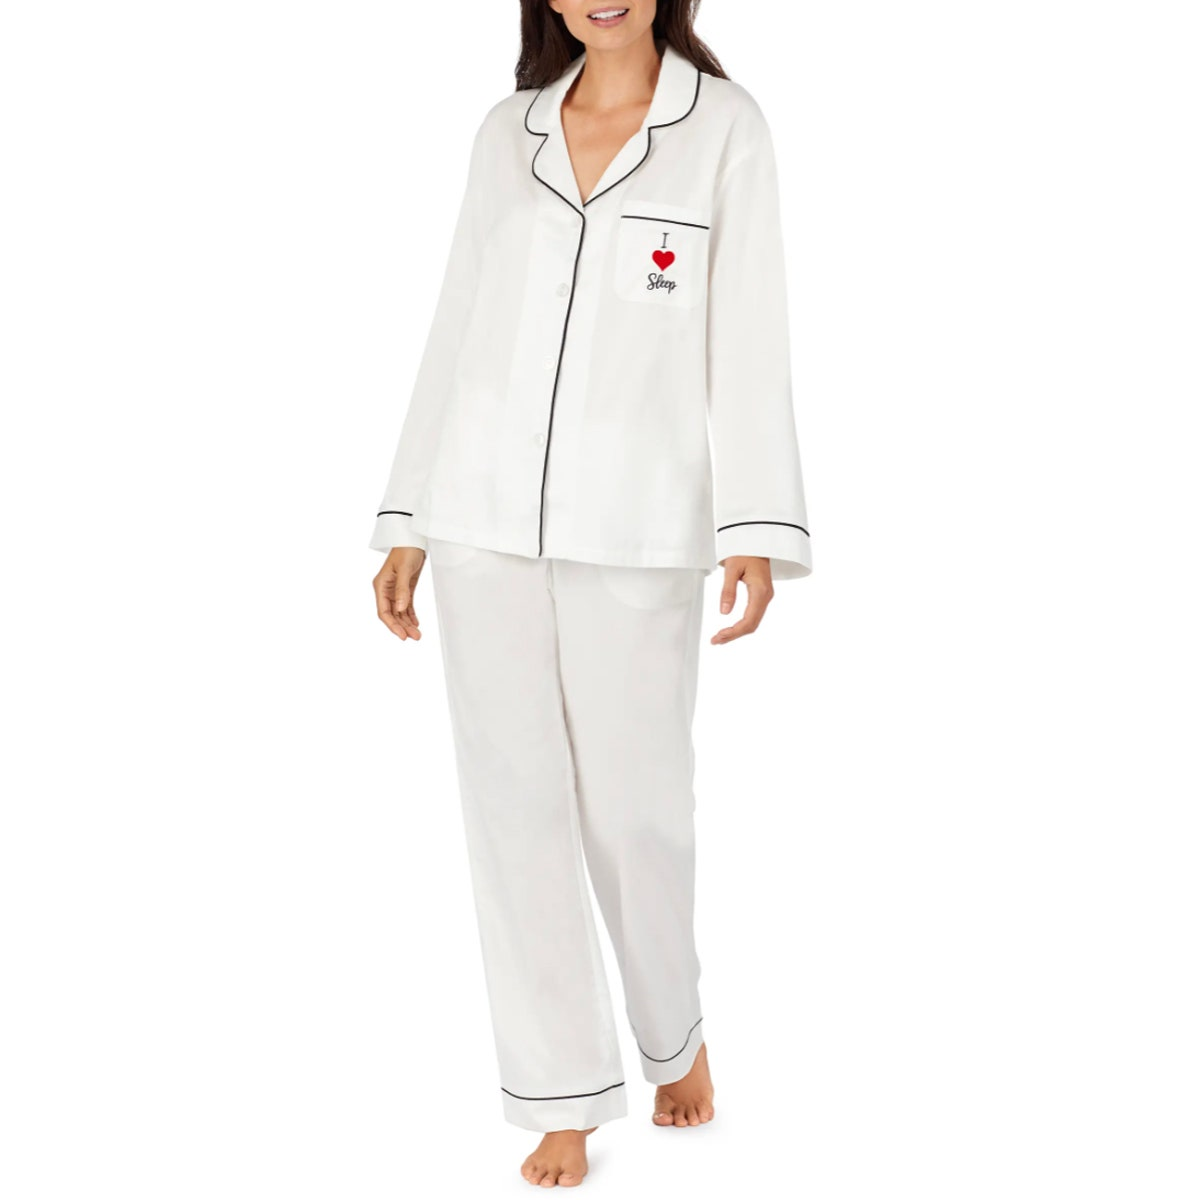 BedHead Pajamas I Love Sleep Organic Cotton Pajamas